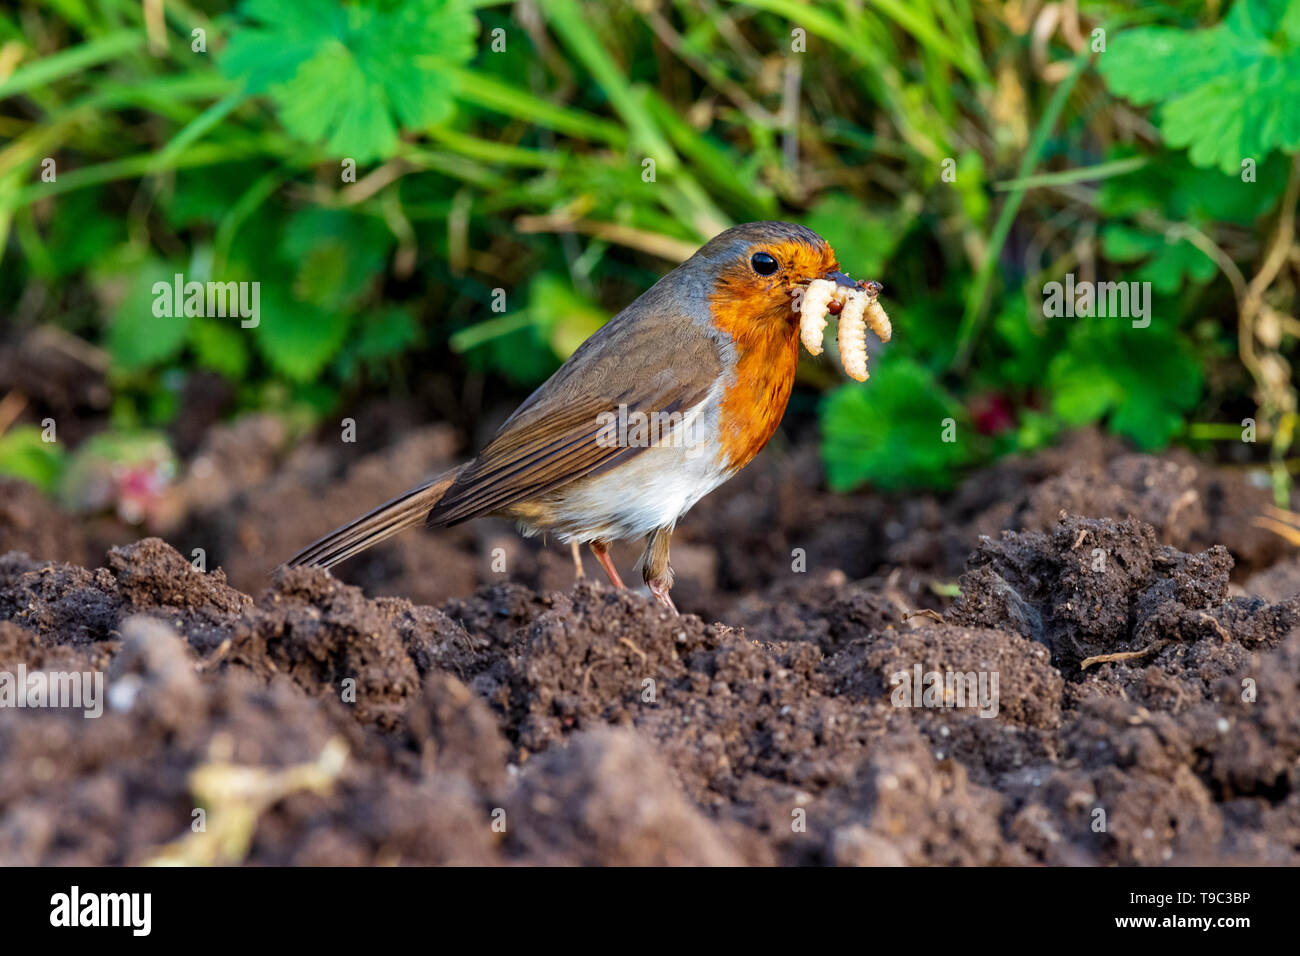 Robin with worms in beak - Stock Image